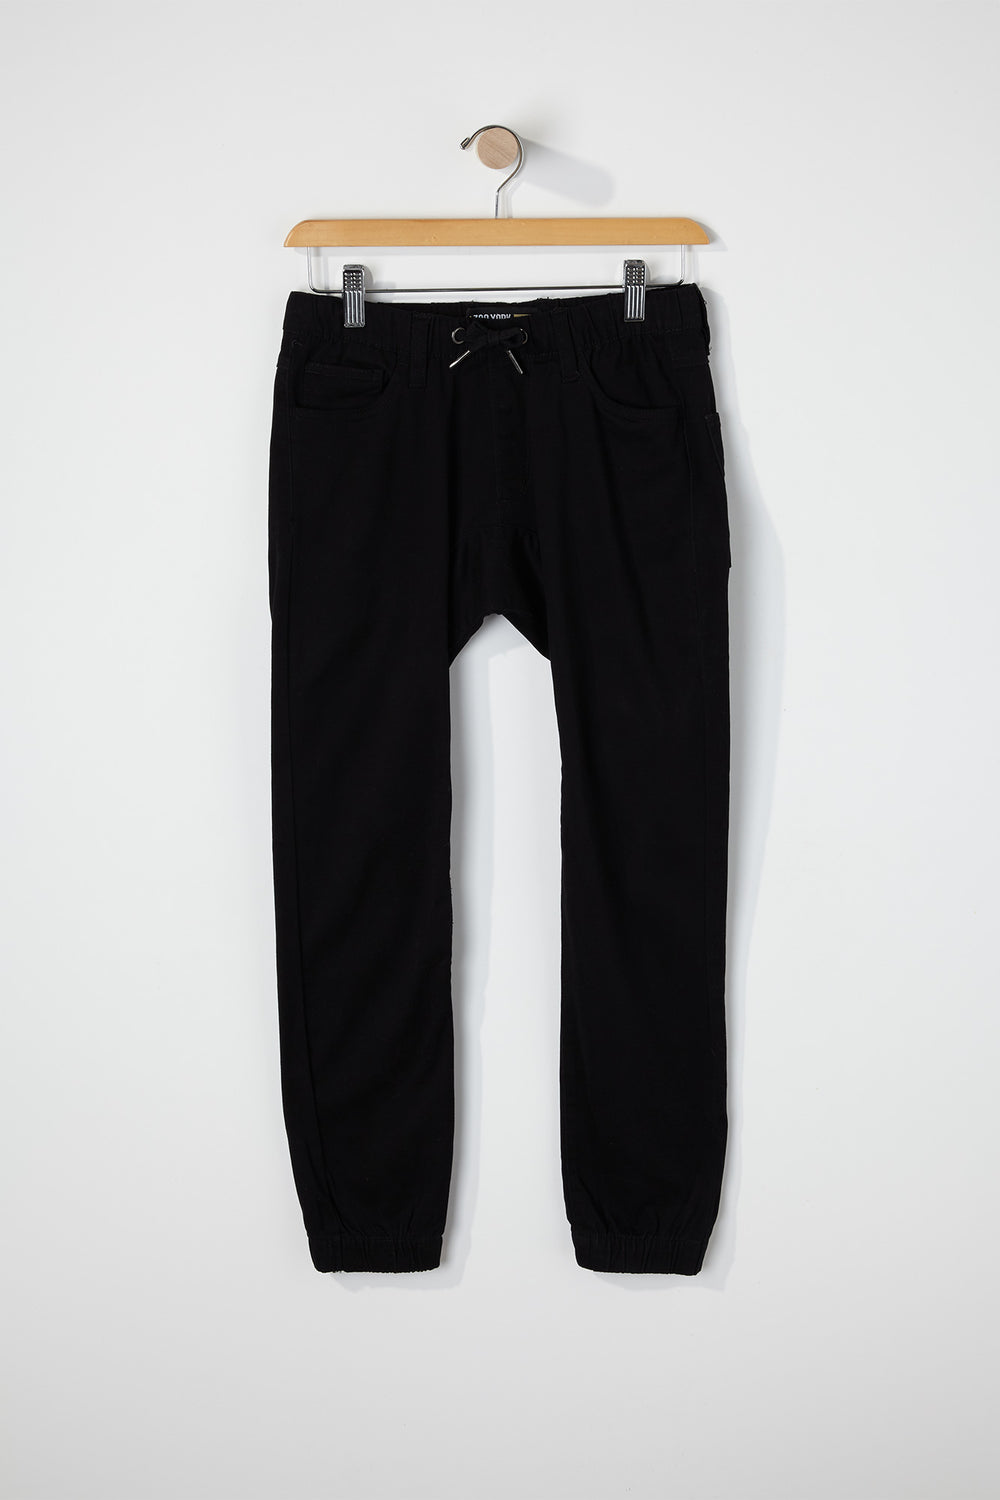 Zoo York Boys 5-Pocket Jogger Black